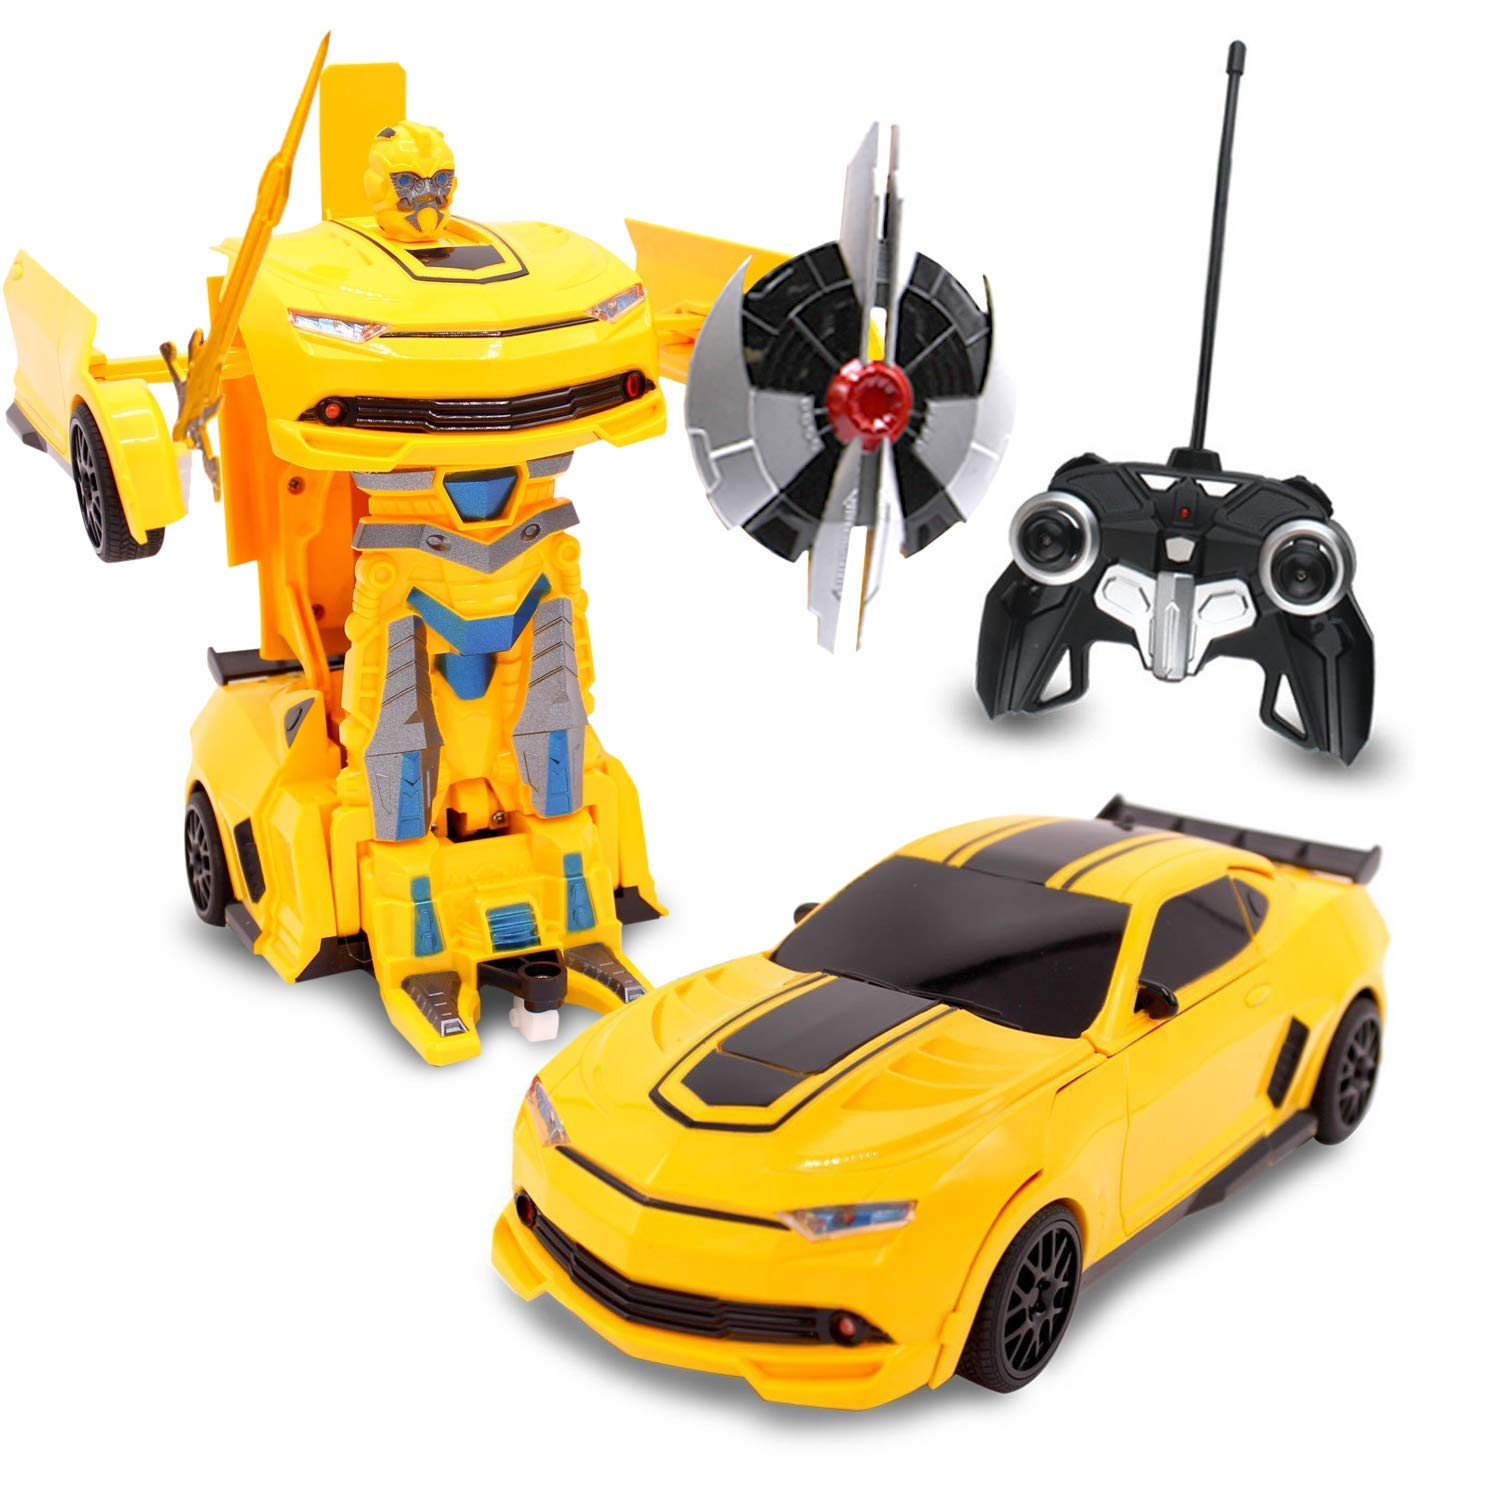 Kids RC Toy Transforming Robot Remote Control (27 MHz) Sports Car One Button Transformation Realistic Engine Sounds 360 Speed Drifting 1:22 Scale Toys For Boys (Yellow) by Transformania Toys (Image #1)